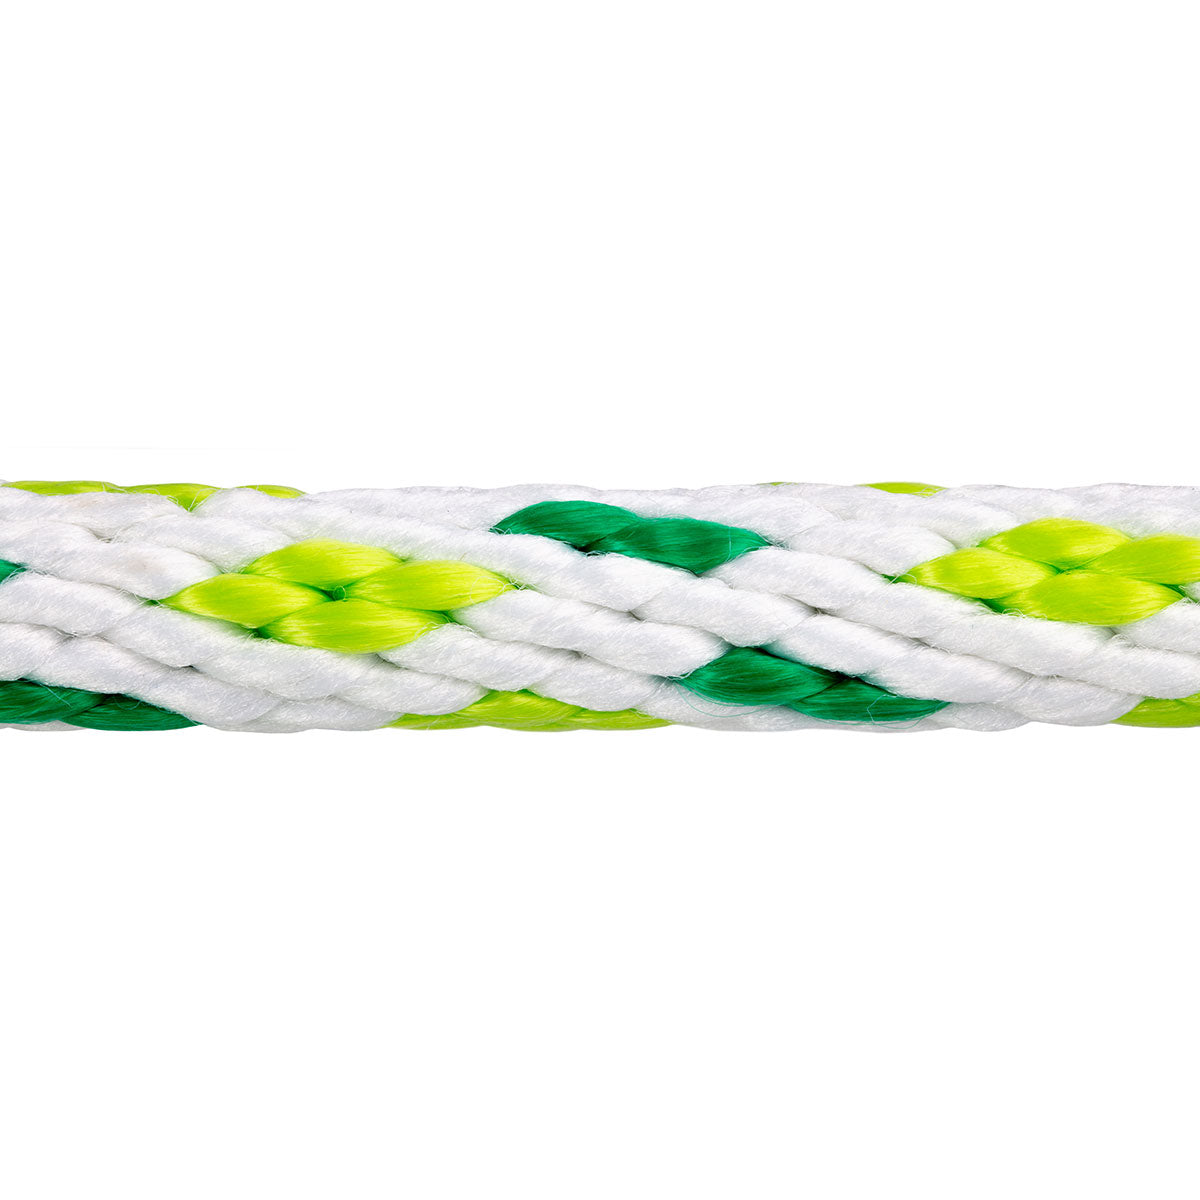 5/8 x 25ft Solid Braid Derby Line - White w/ Green Tracer & Neon Green Diamonds